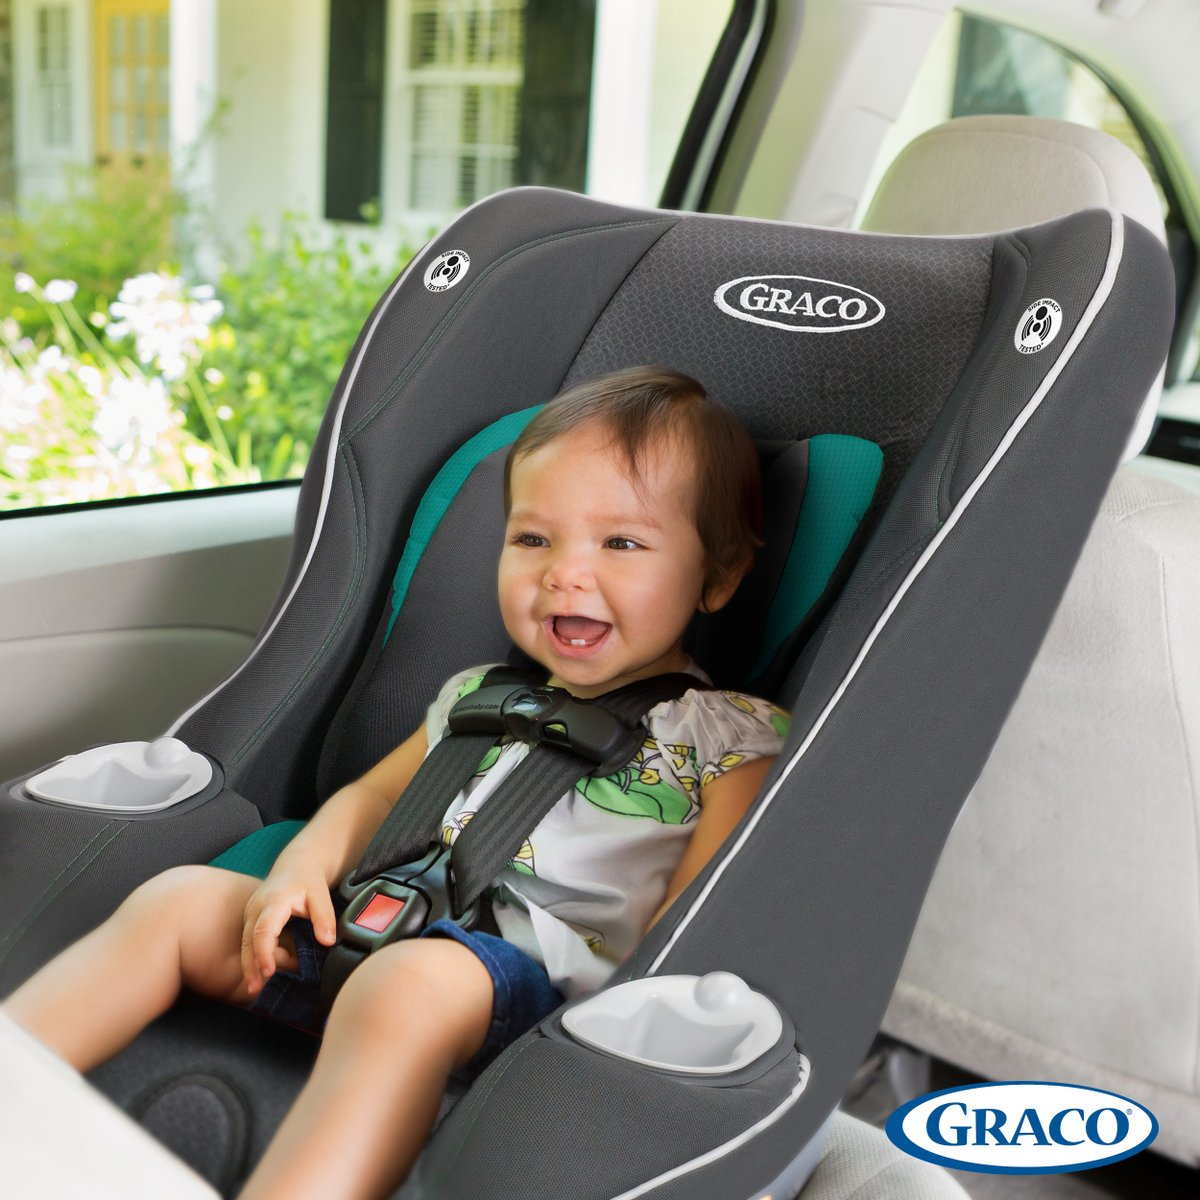 Graco Is Recalling More than 25,000 Car Seats